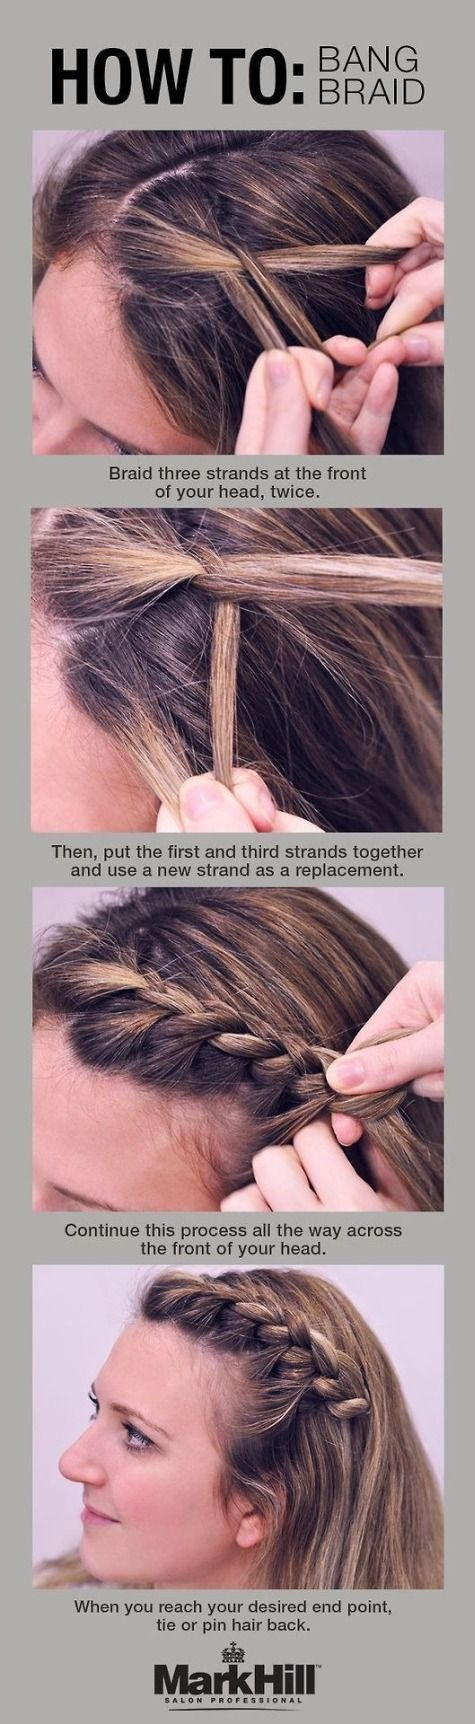 best beauty and hair images on pinterest hair makeup hair